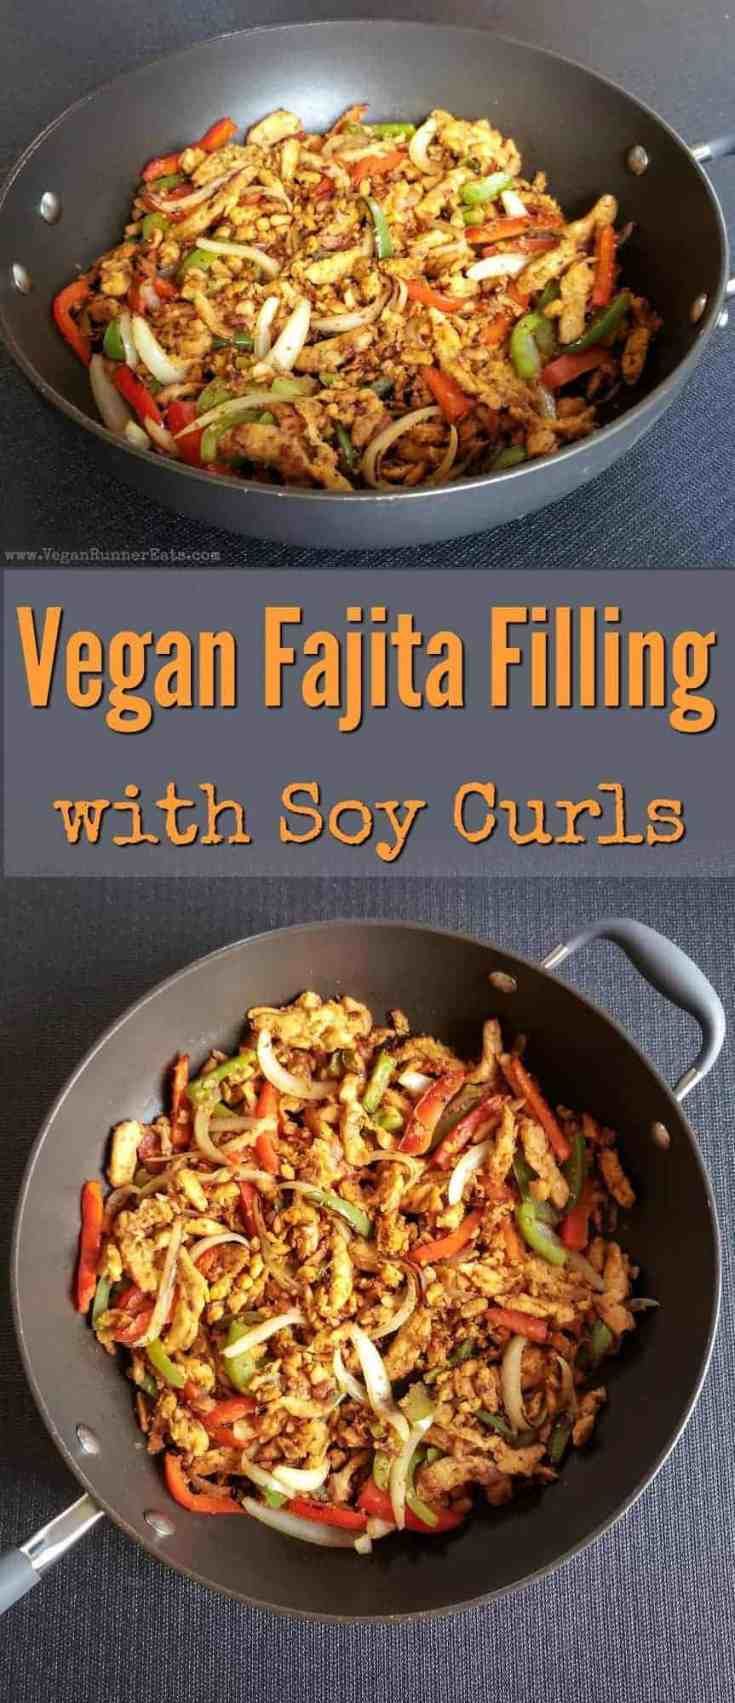 Vegan fajita filling recipe with soy curls, peppers and onions - an easy vegan fajita or taco filling that uses soy curls as the main ingredient. | soy curls fajita filling | soy curls tacos | soy curls burrito | soy curls recipes | vegan fajitas recipe | vegetarian fajitas recipe | vegan taco recipe | easy vegan recipes | vegan taco night | #soycurlsrecipes #soycurls #vegantacos #veganrecipes